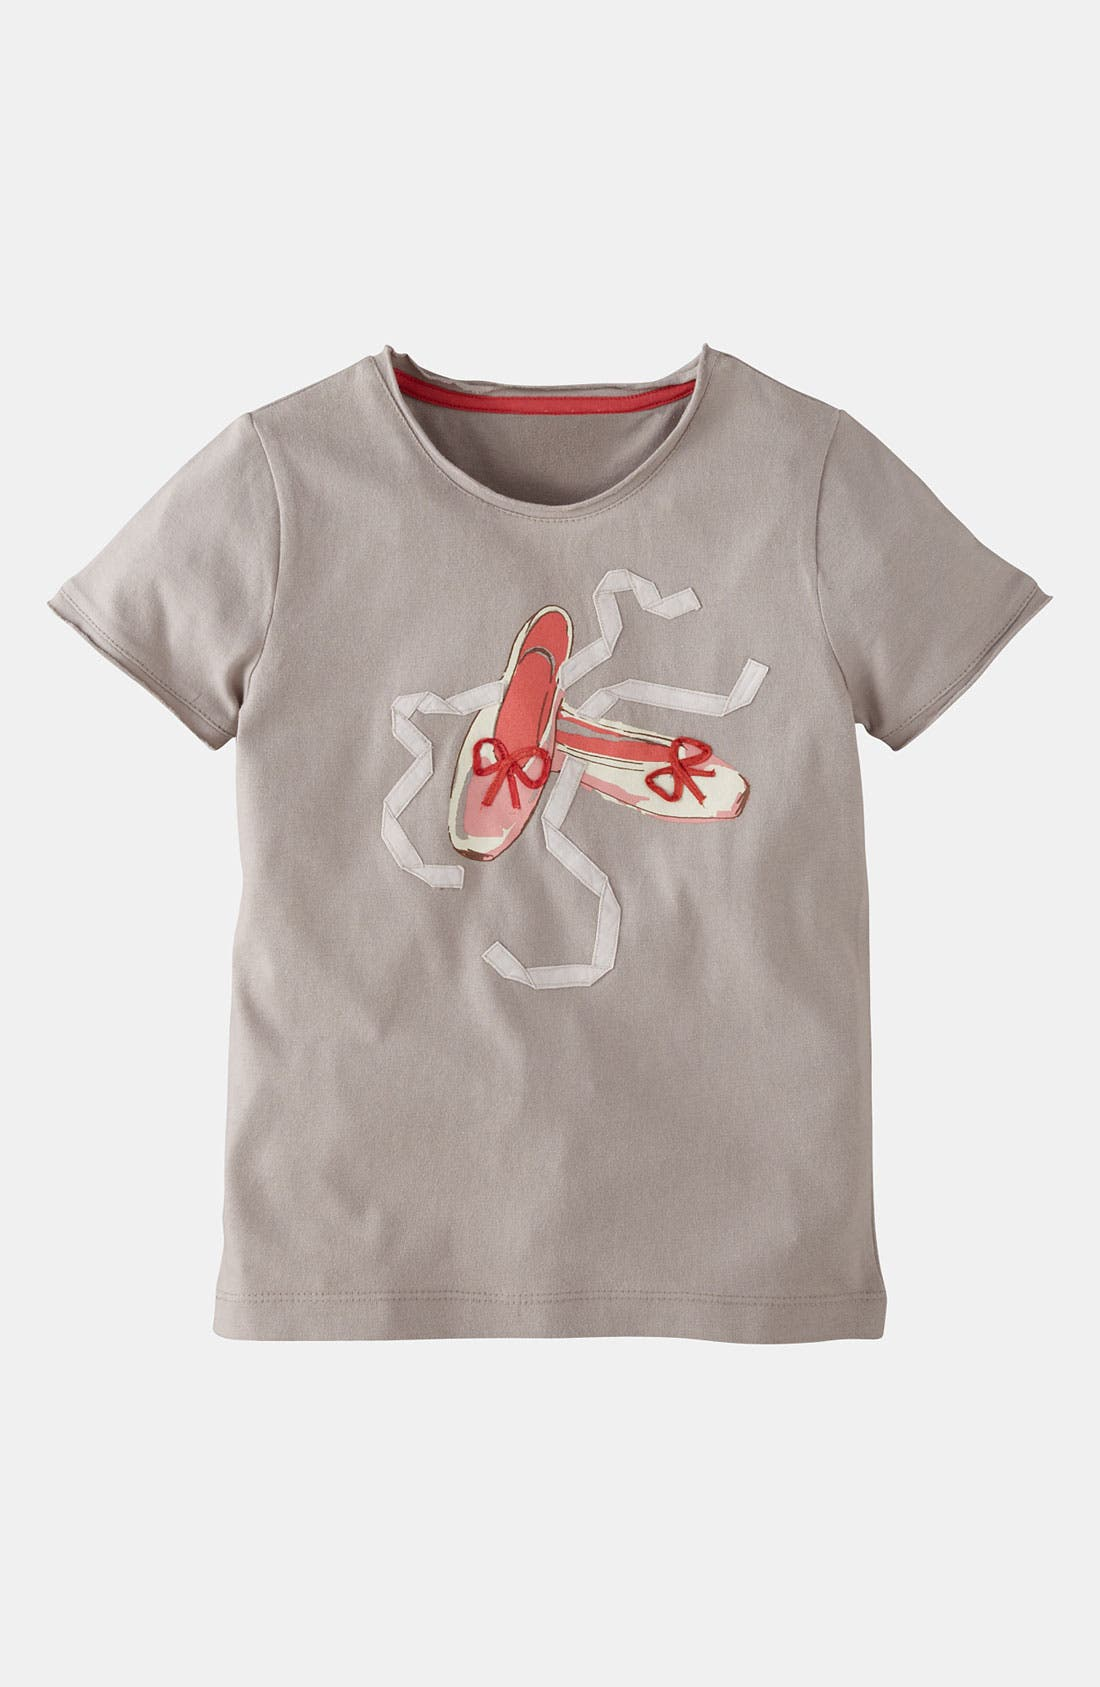 Alternate Image 1 Selected - Mini Boden 'Pretty' Appliqué Tee (Toddler Girls)